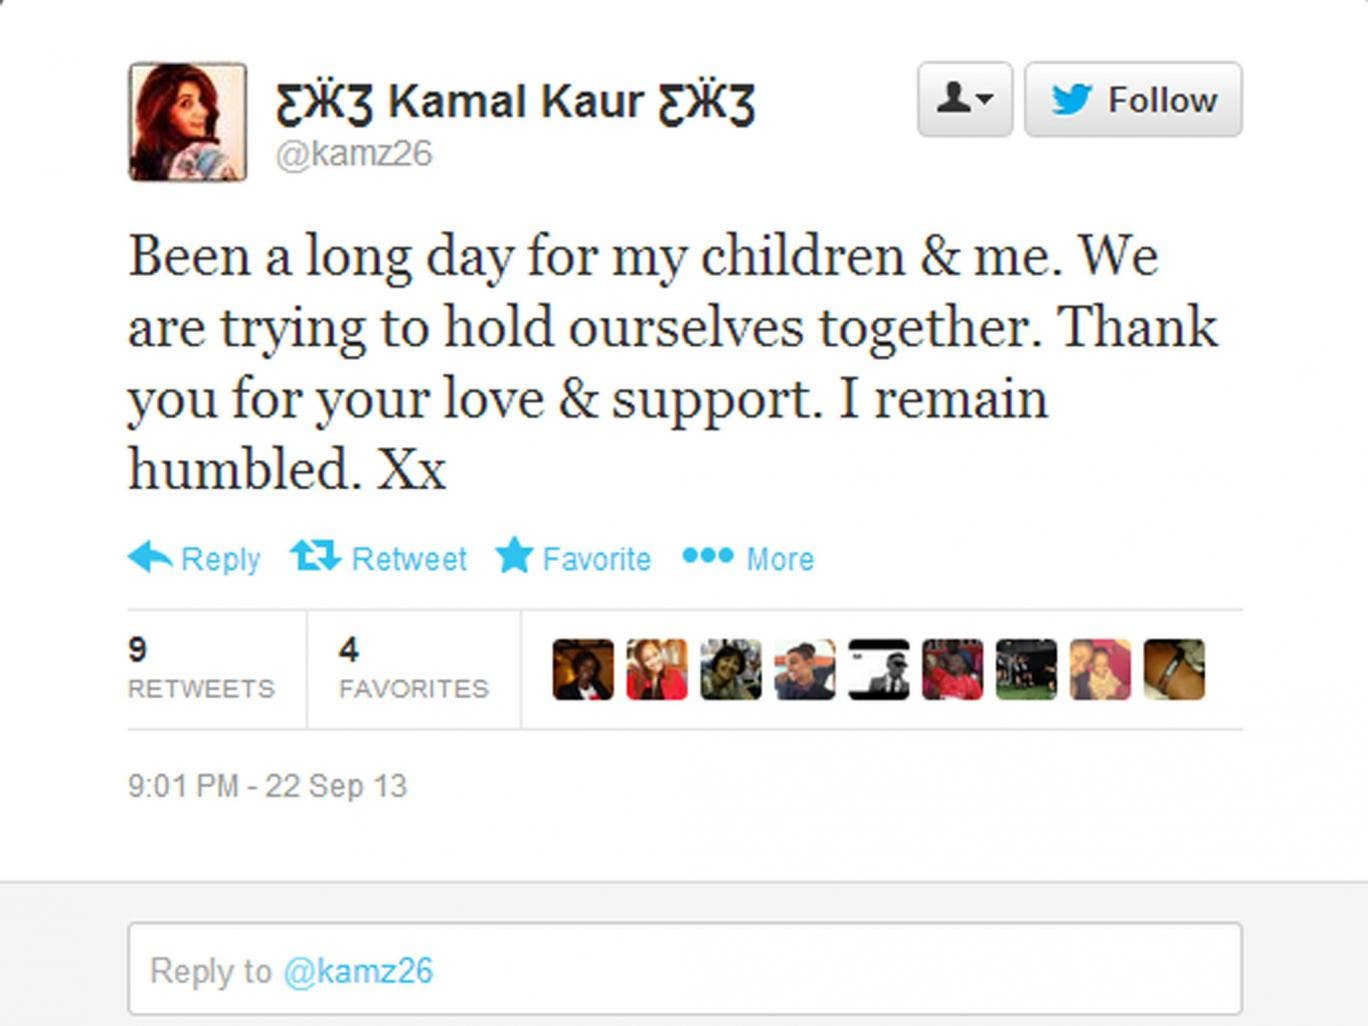 The Twitter feed of journalist Kamal Kaur records her ordeal in the Westgate terror attack